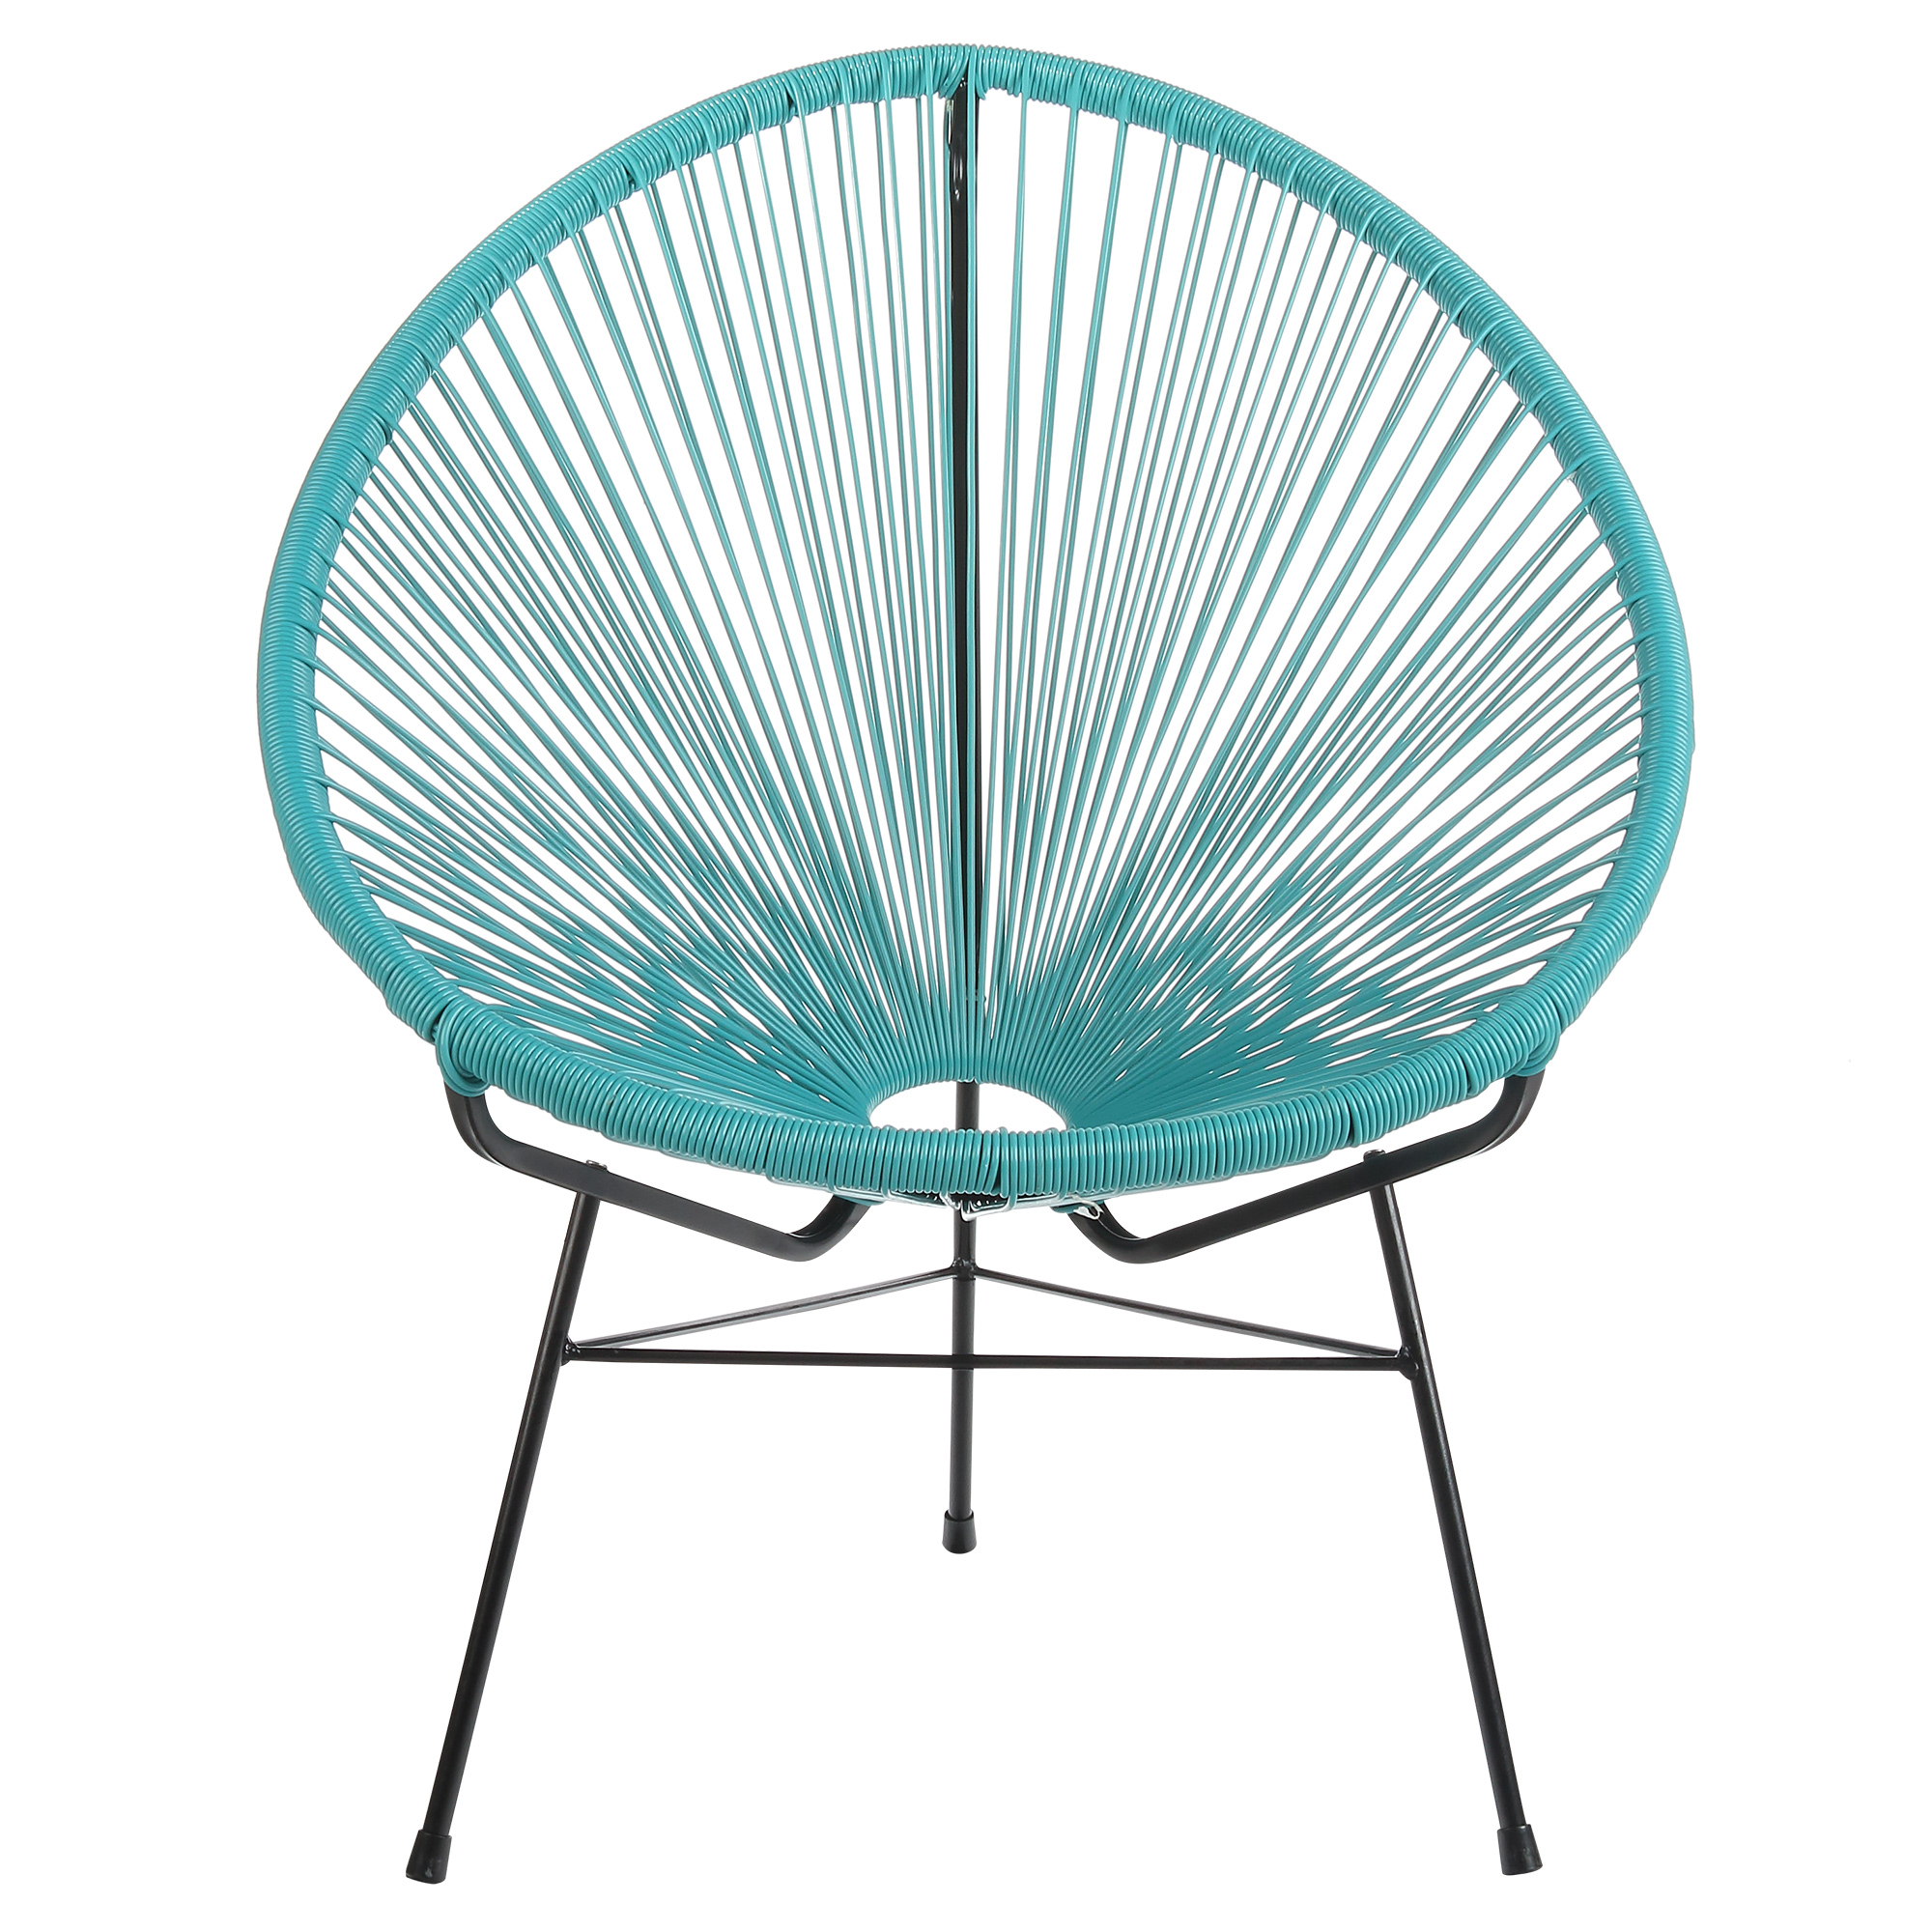 Acapulco Outdoor Lounge Chair - Blue Cord